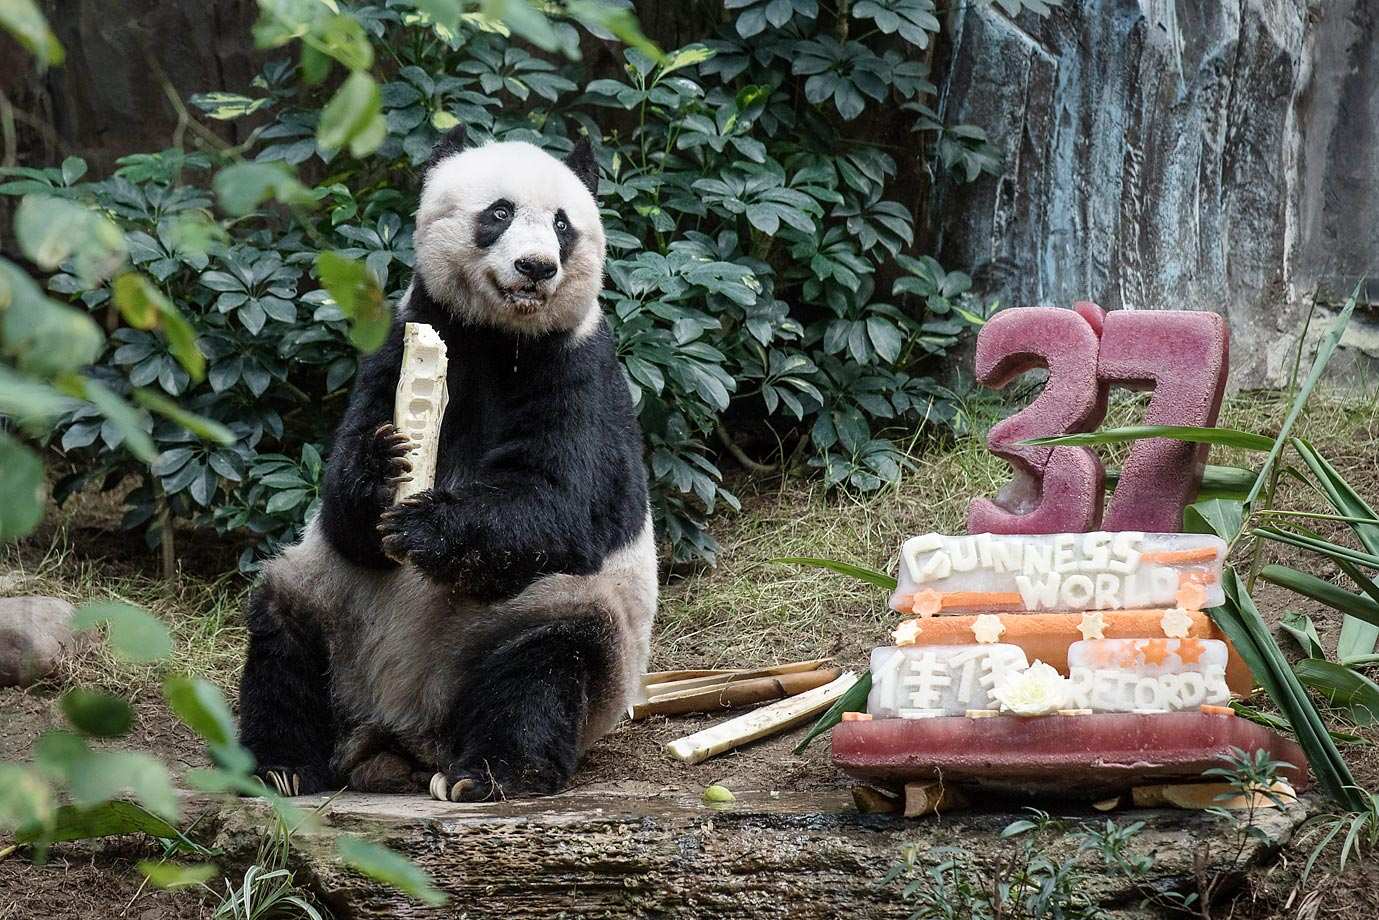 Jia Jia sits next to her cake made of ice and fruit juice to mark her 37th birthday at an amusement park in Hong Kong.  The giant panda became the oldest ever in captivity, ageing the equivalent of more than 100-years-old in human terms.